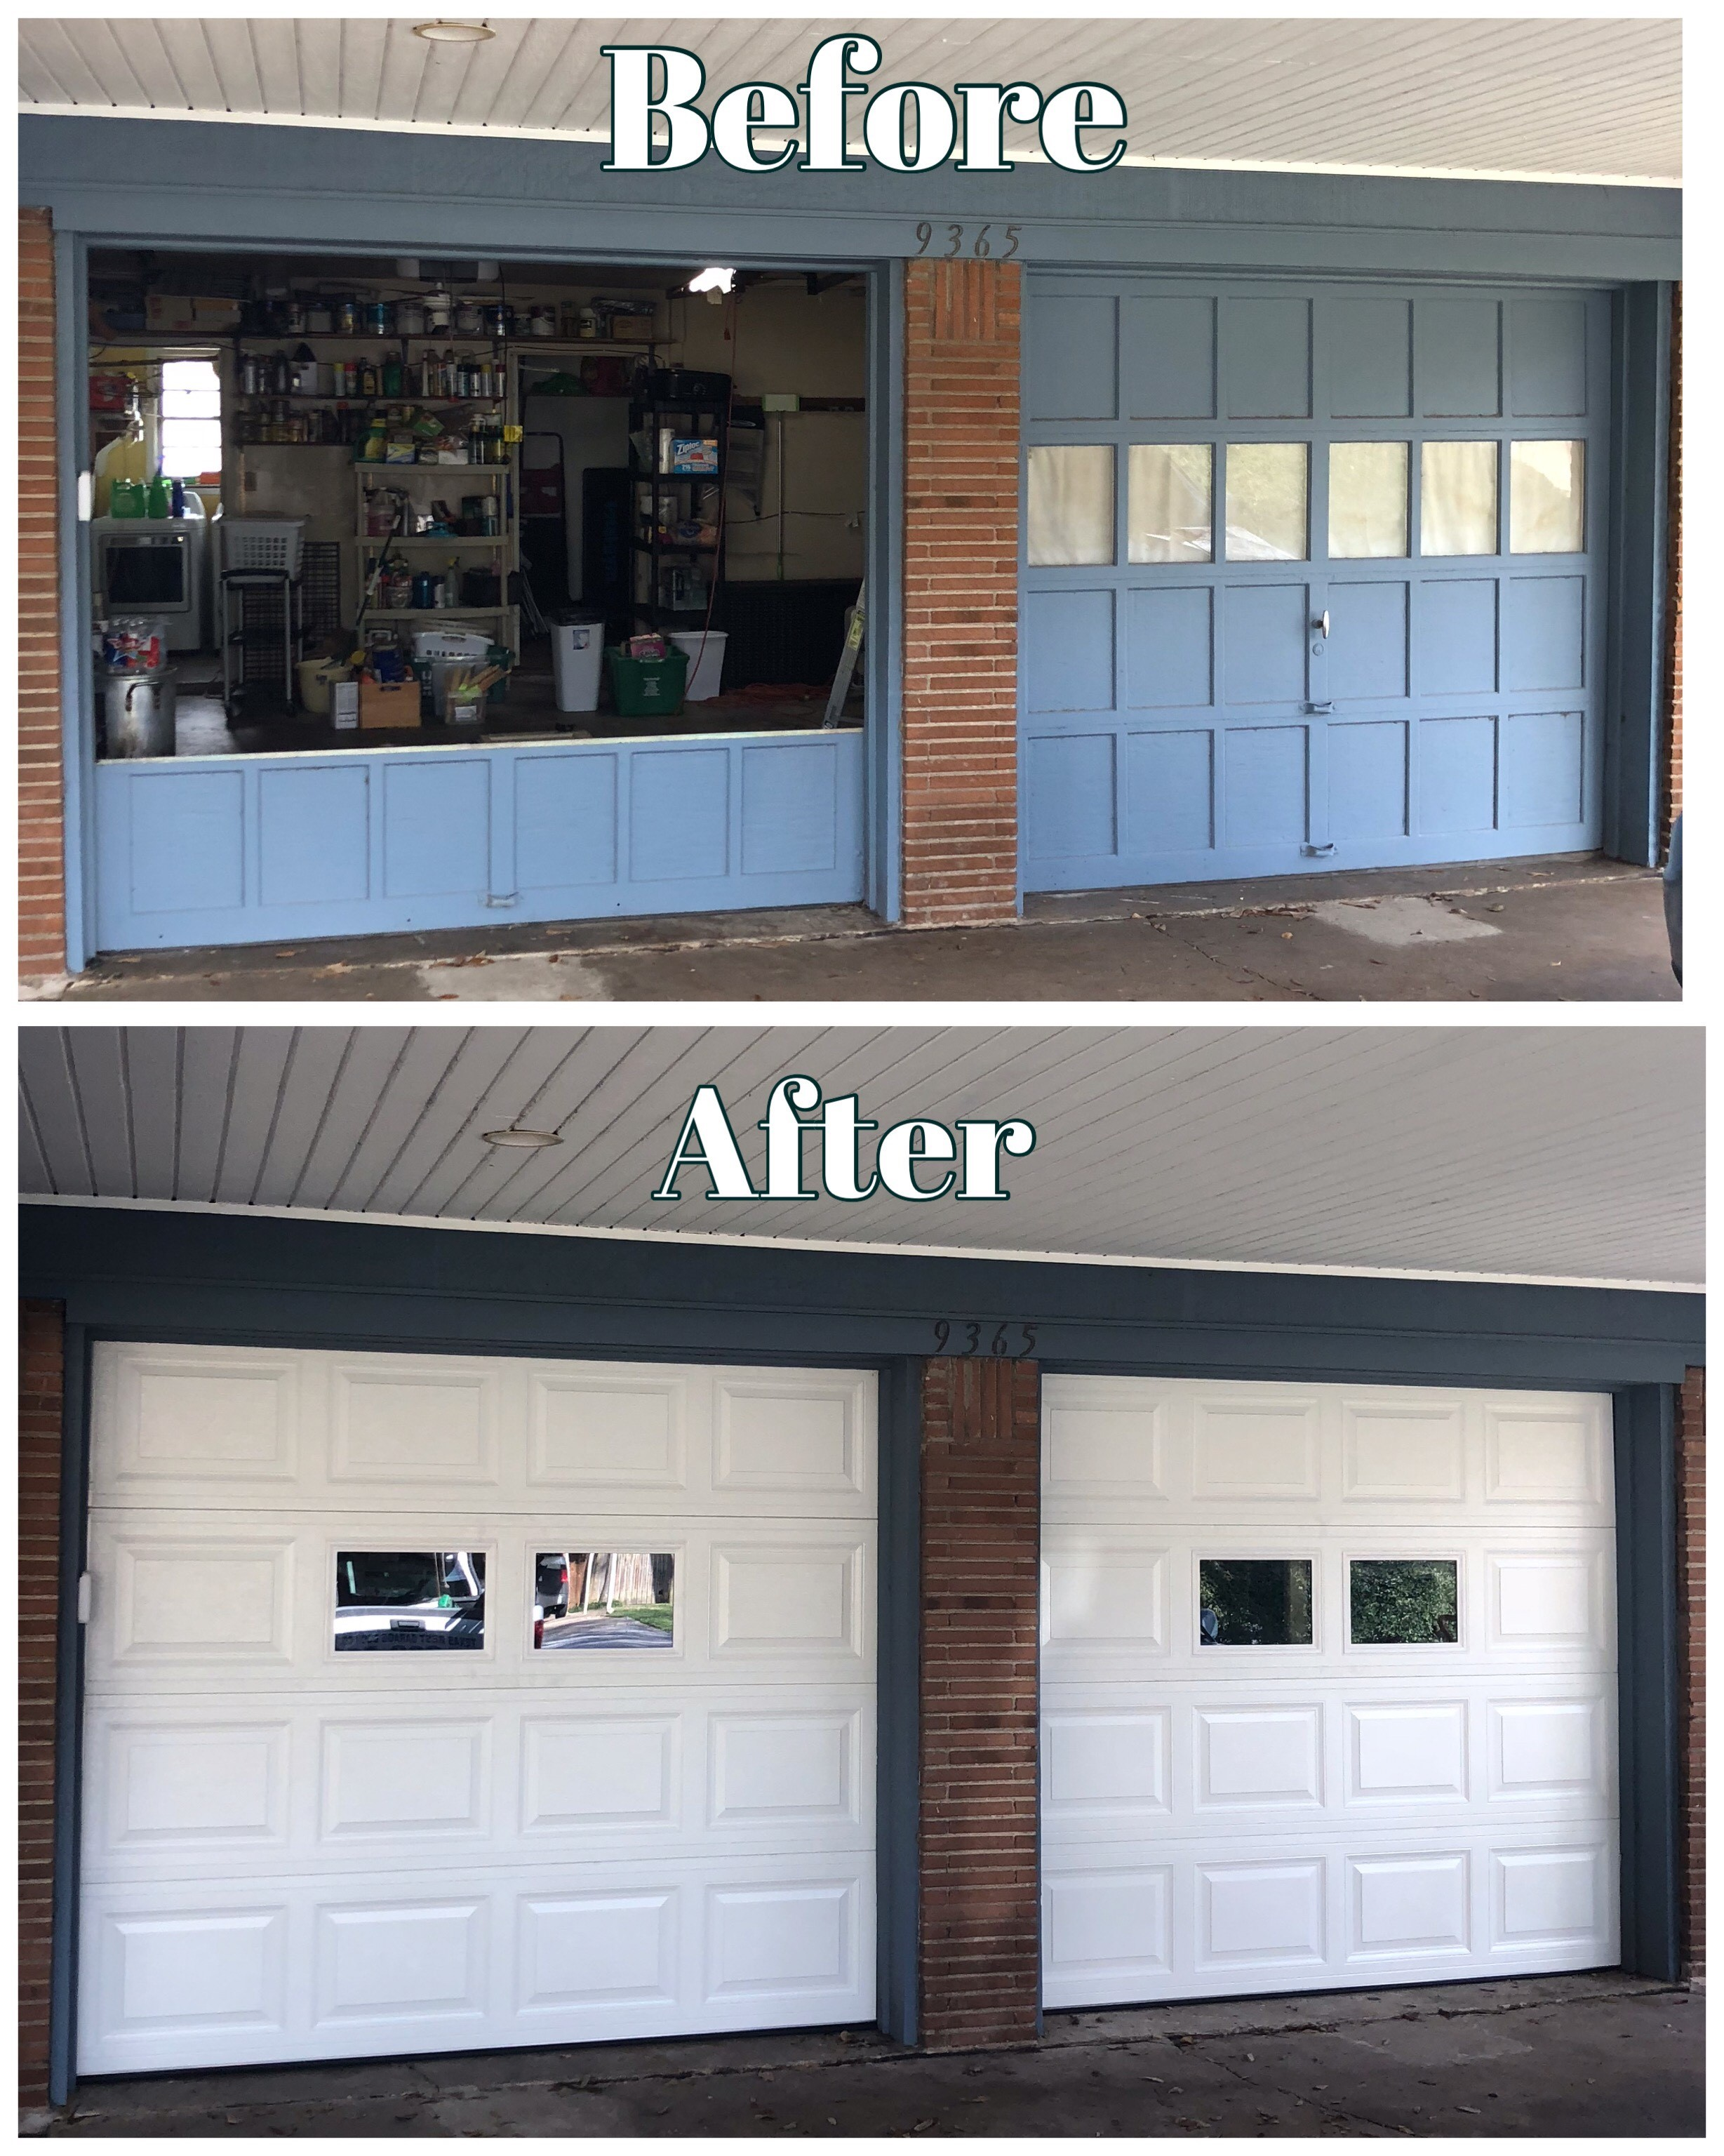 Texas Best Garage Door Co. image 3